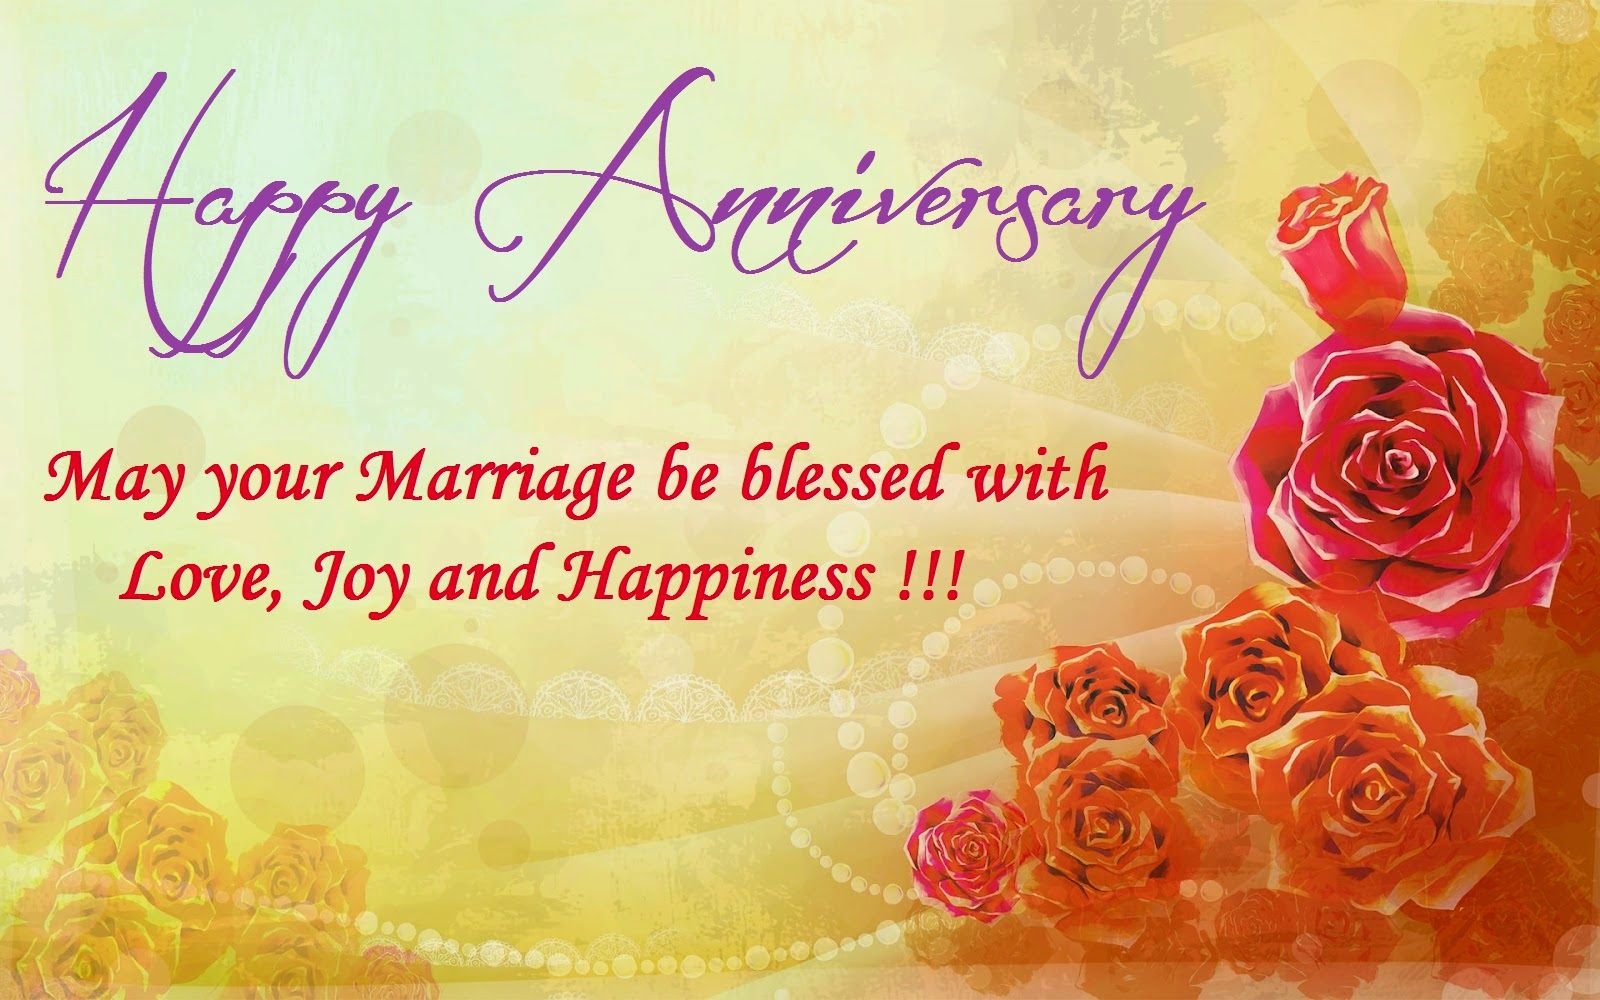 Happy wedding anniversary wishes images cards greetings photos for best happy wedding anniversary greetings photos m4hsunfo